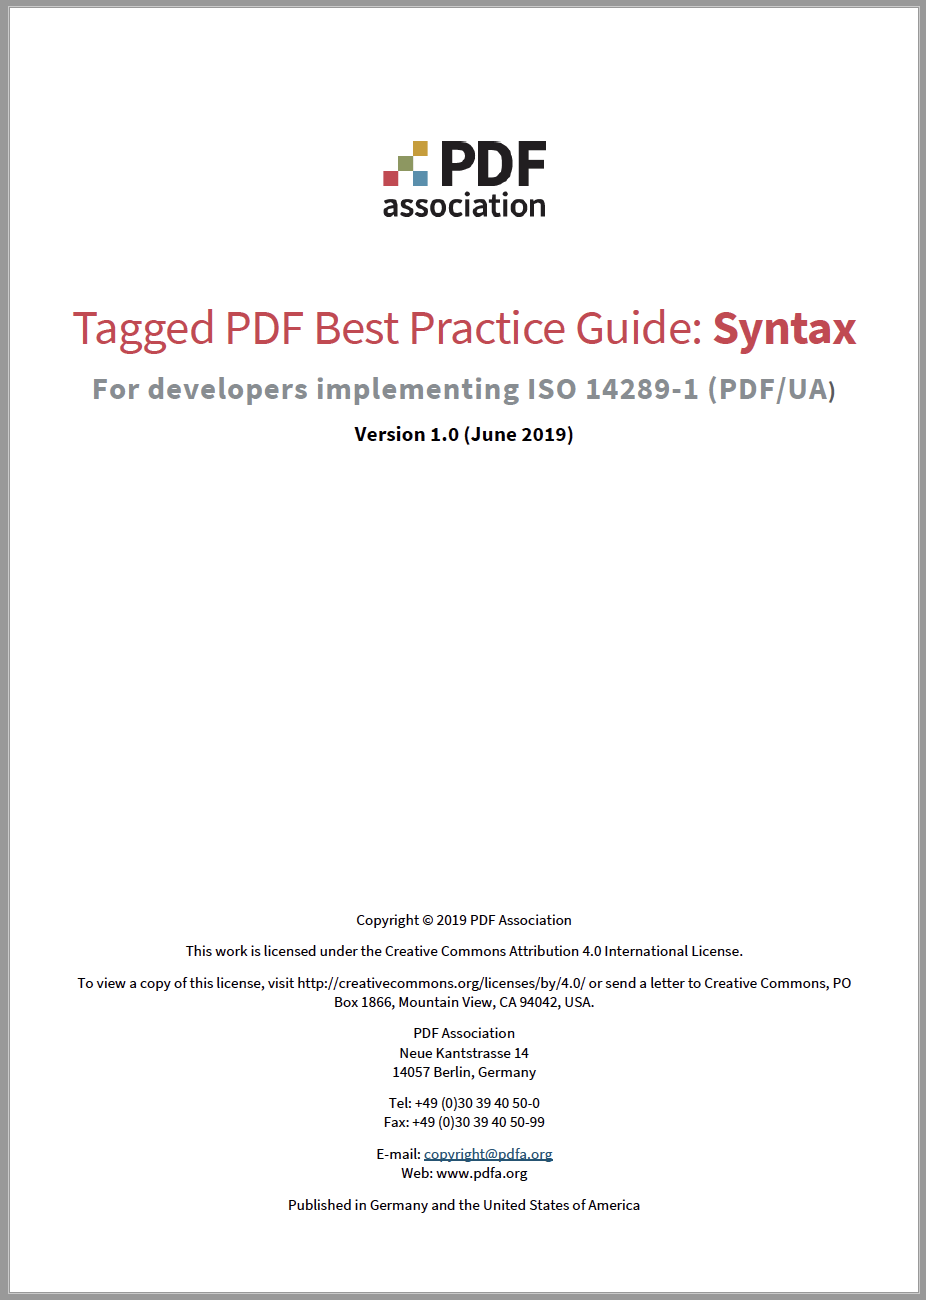 Cover of Tagged PDF Best Practice Guide.